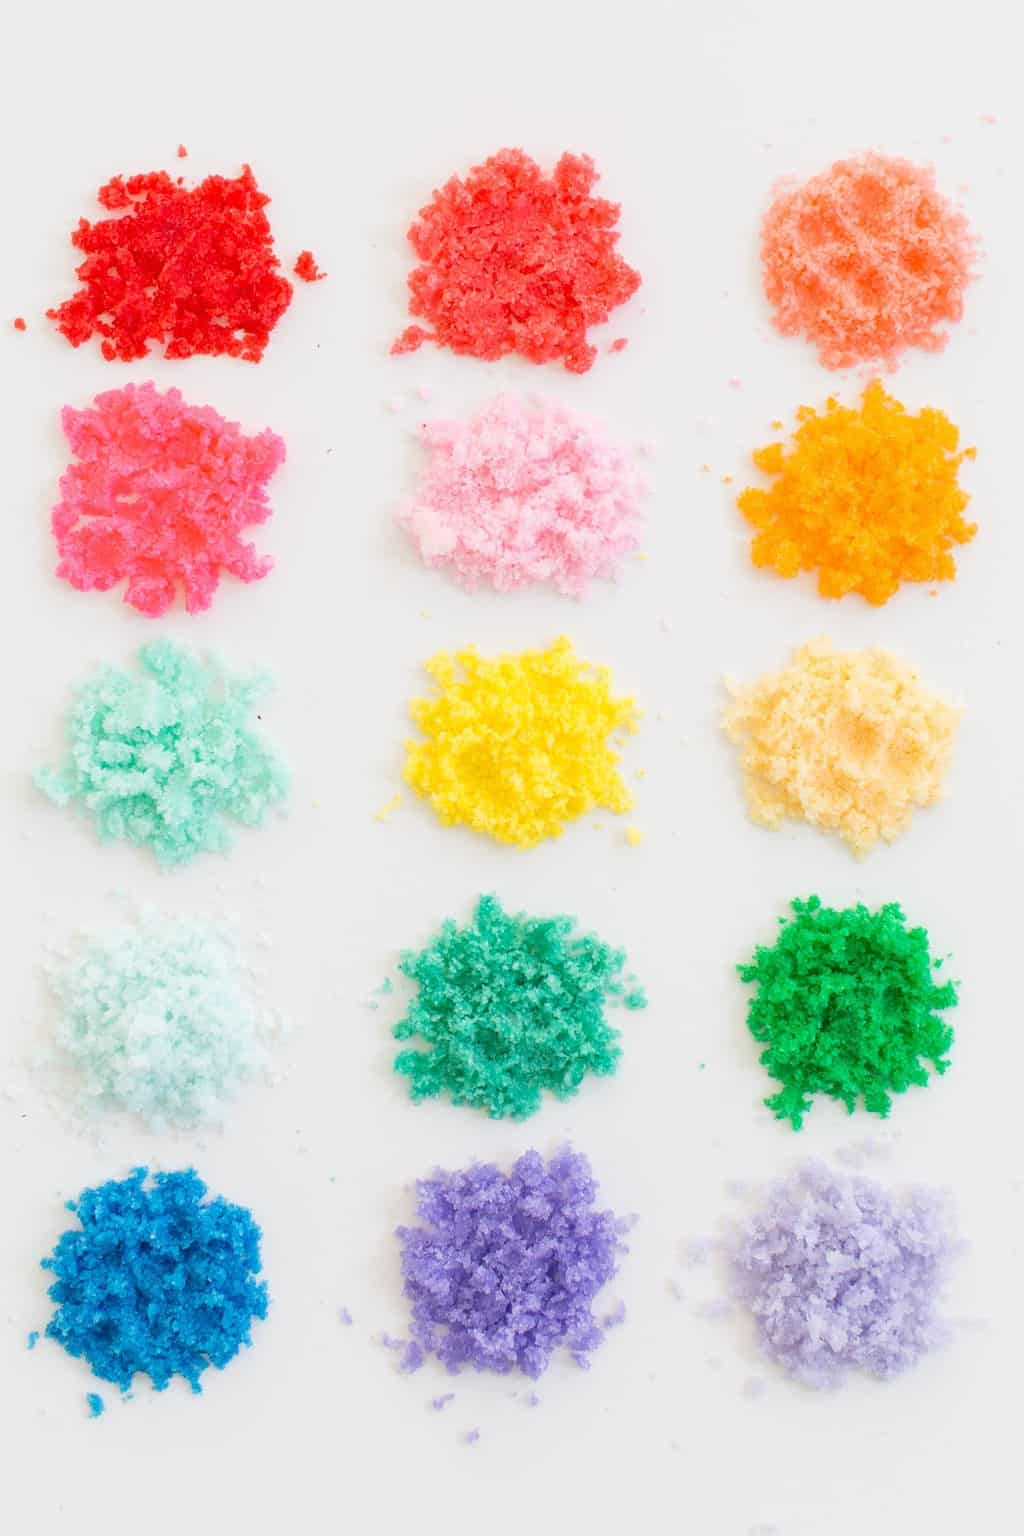 photo of the different color ways and options to make your own diy sand art sugar scrub by top Houston lifestyle blogger Ashley Rose of Sugar & Cloth